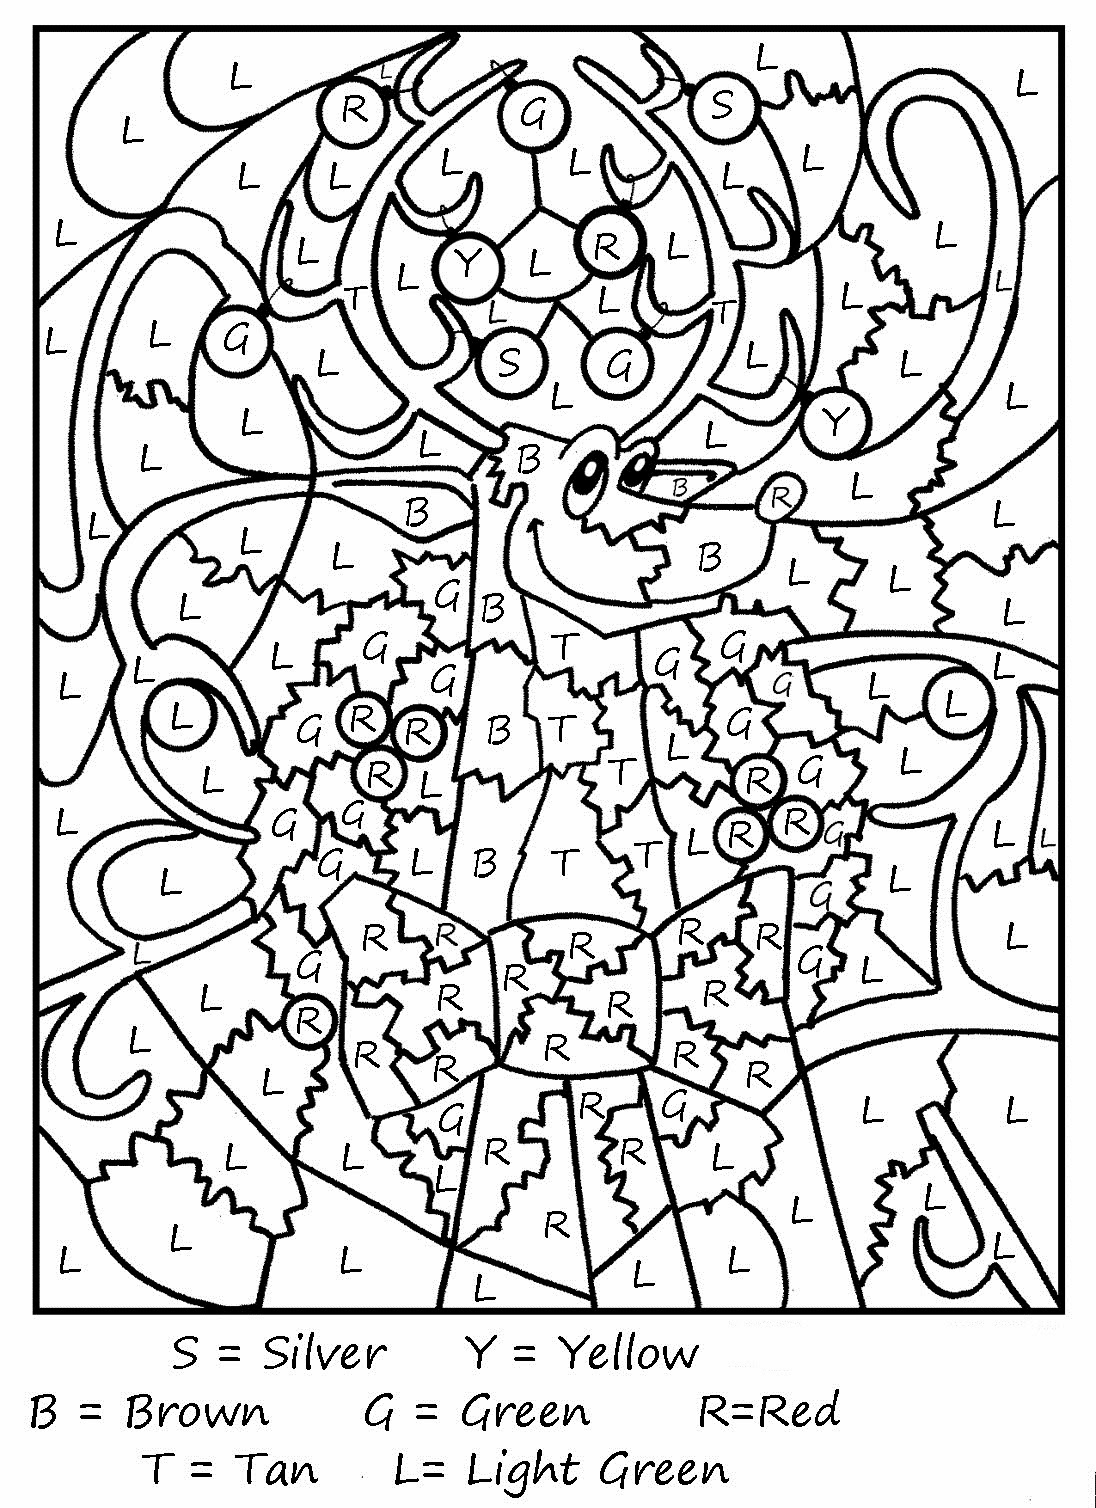 Free printable coloring pages reindeer - Olive The Other Reindeer Coloring Page Coloring Pages